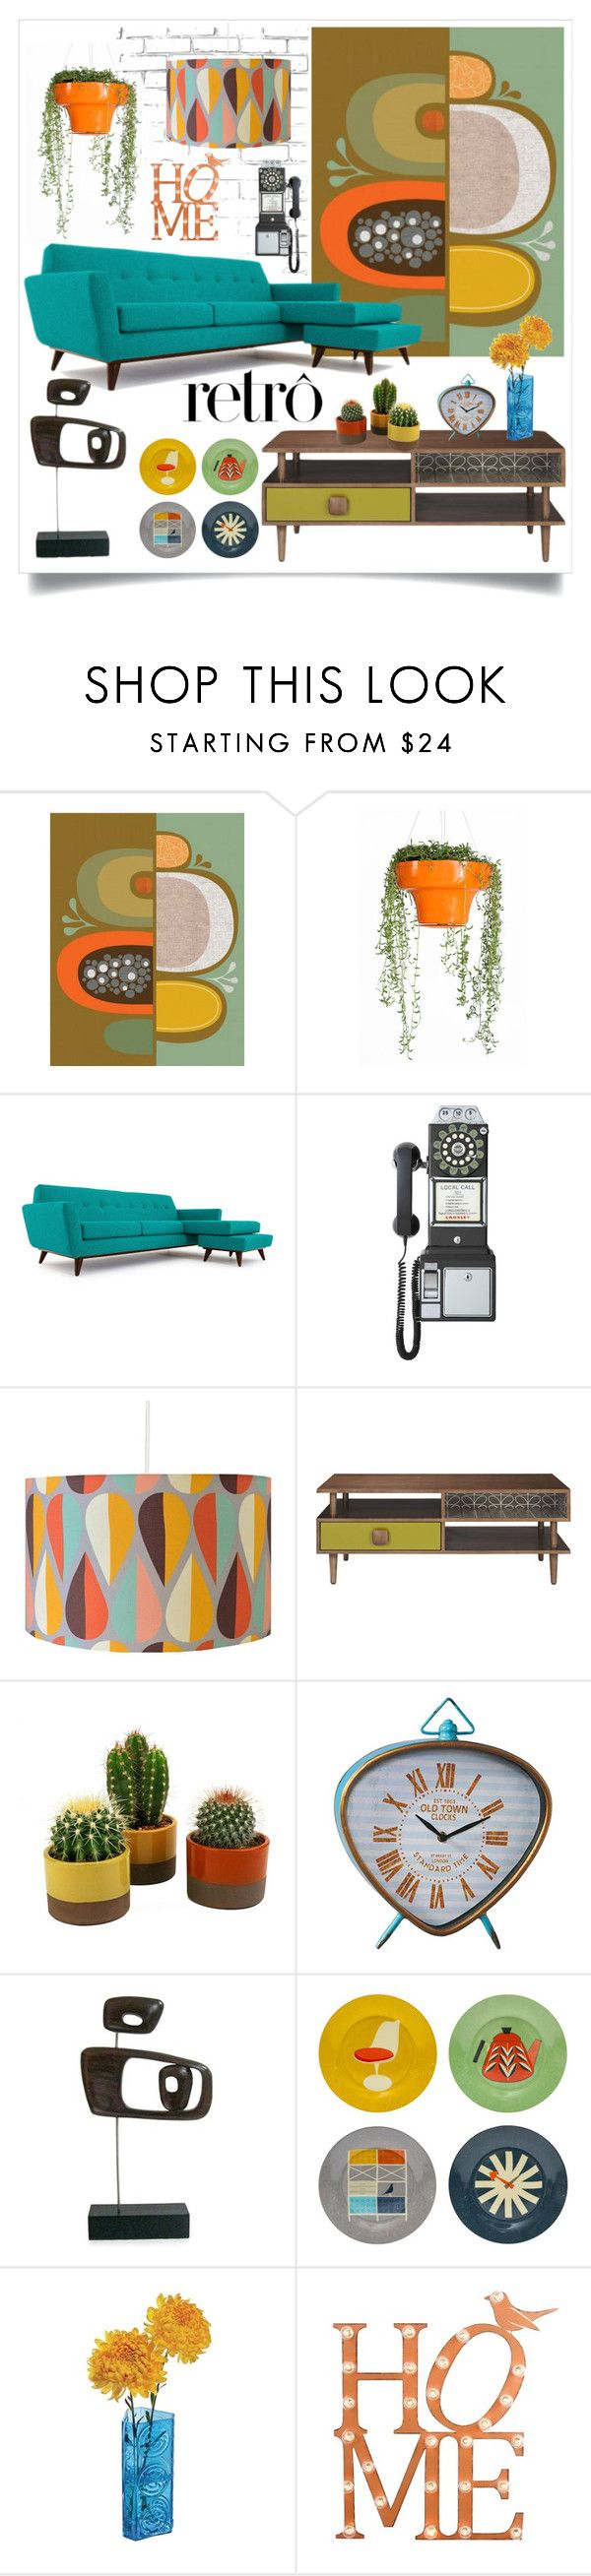 """Retro Home"" by caymansunshine on Polyvore featuring interior, interiors, interior design, home, home decor, interior decorating, Dot & Bo, Wallter, Joybird Furniture and Orla Kiely"